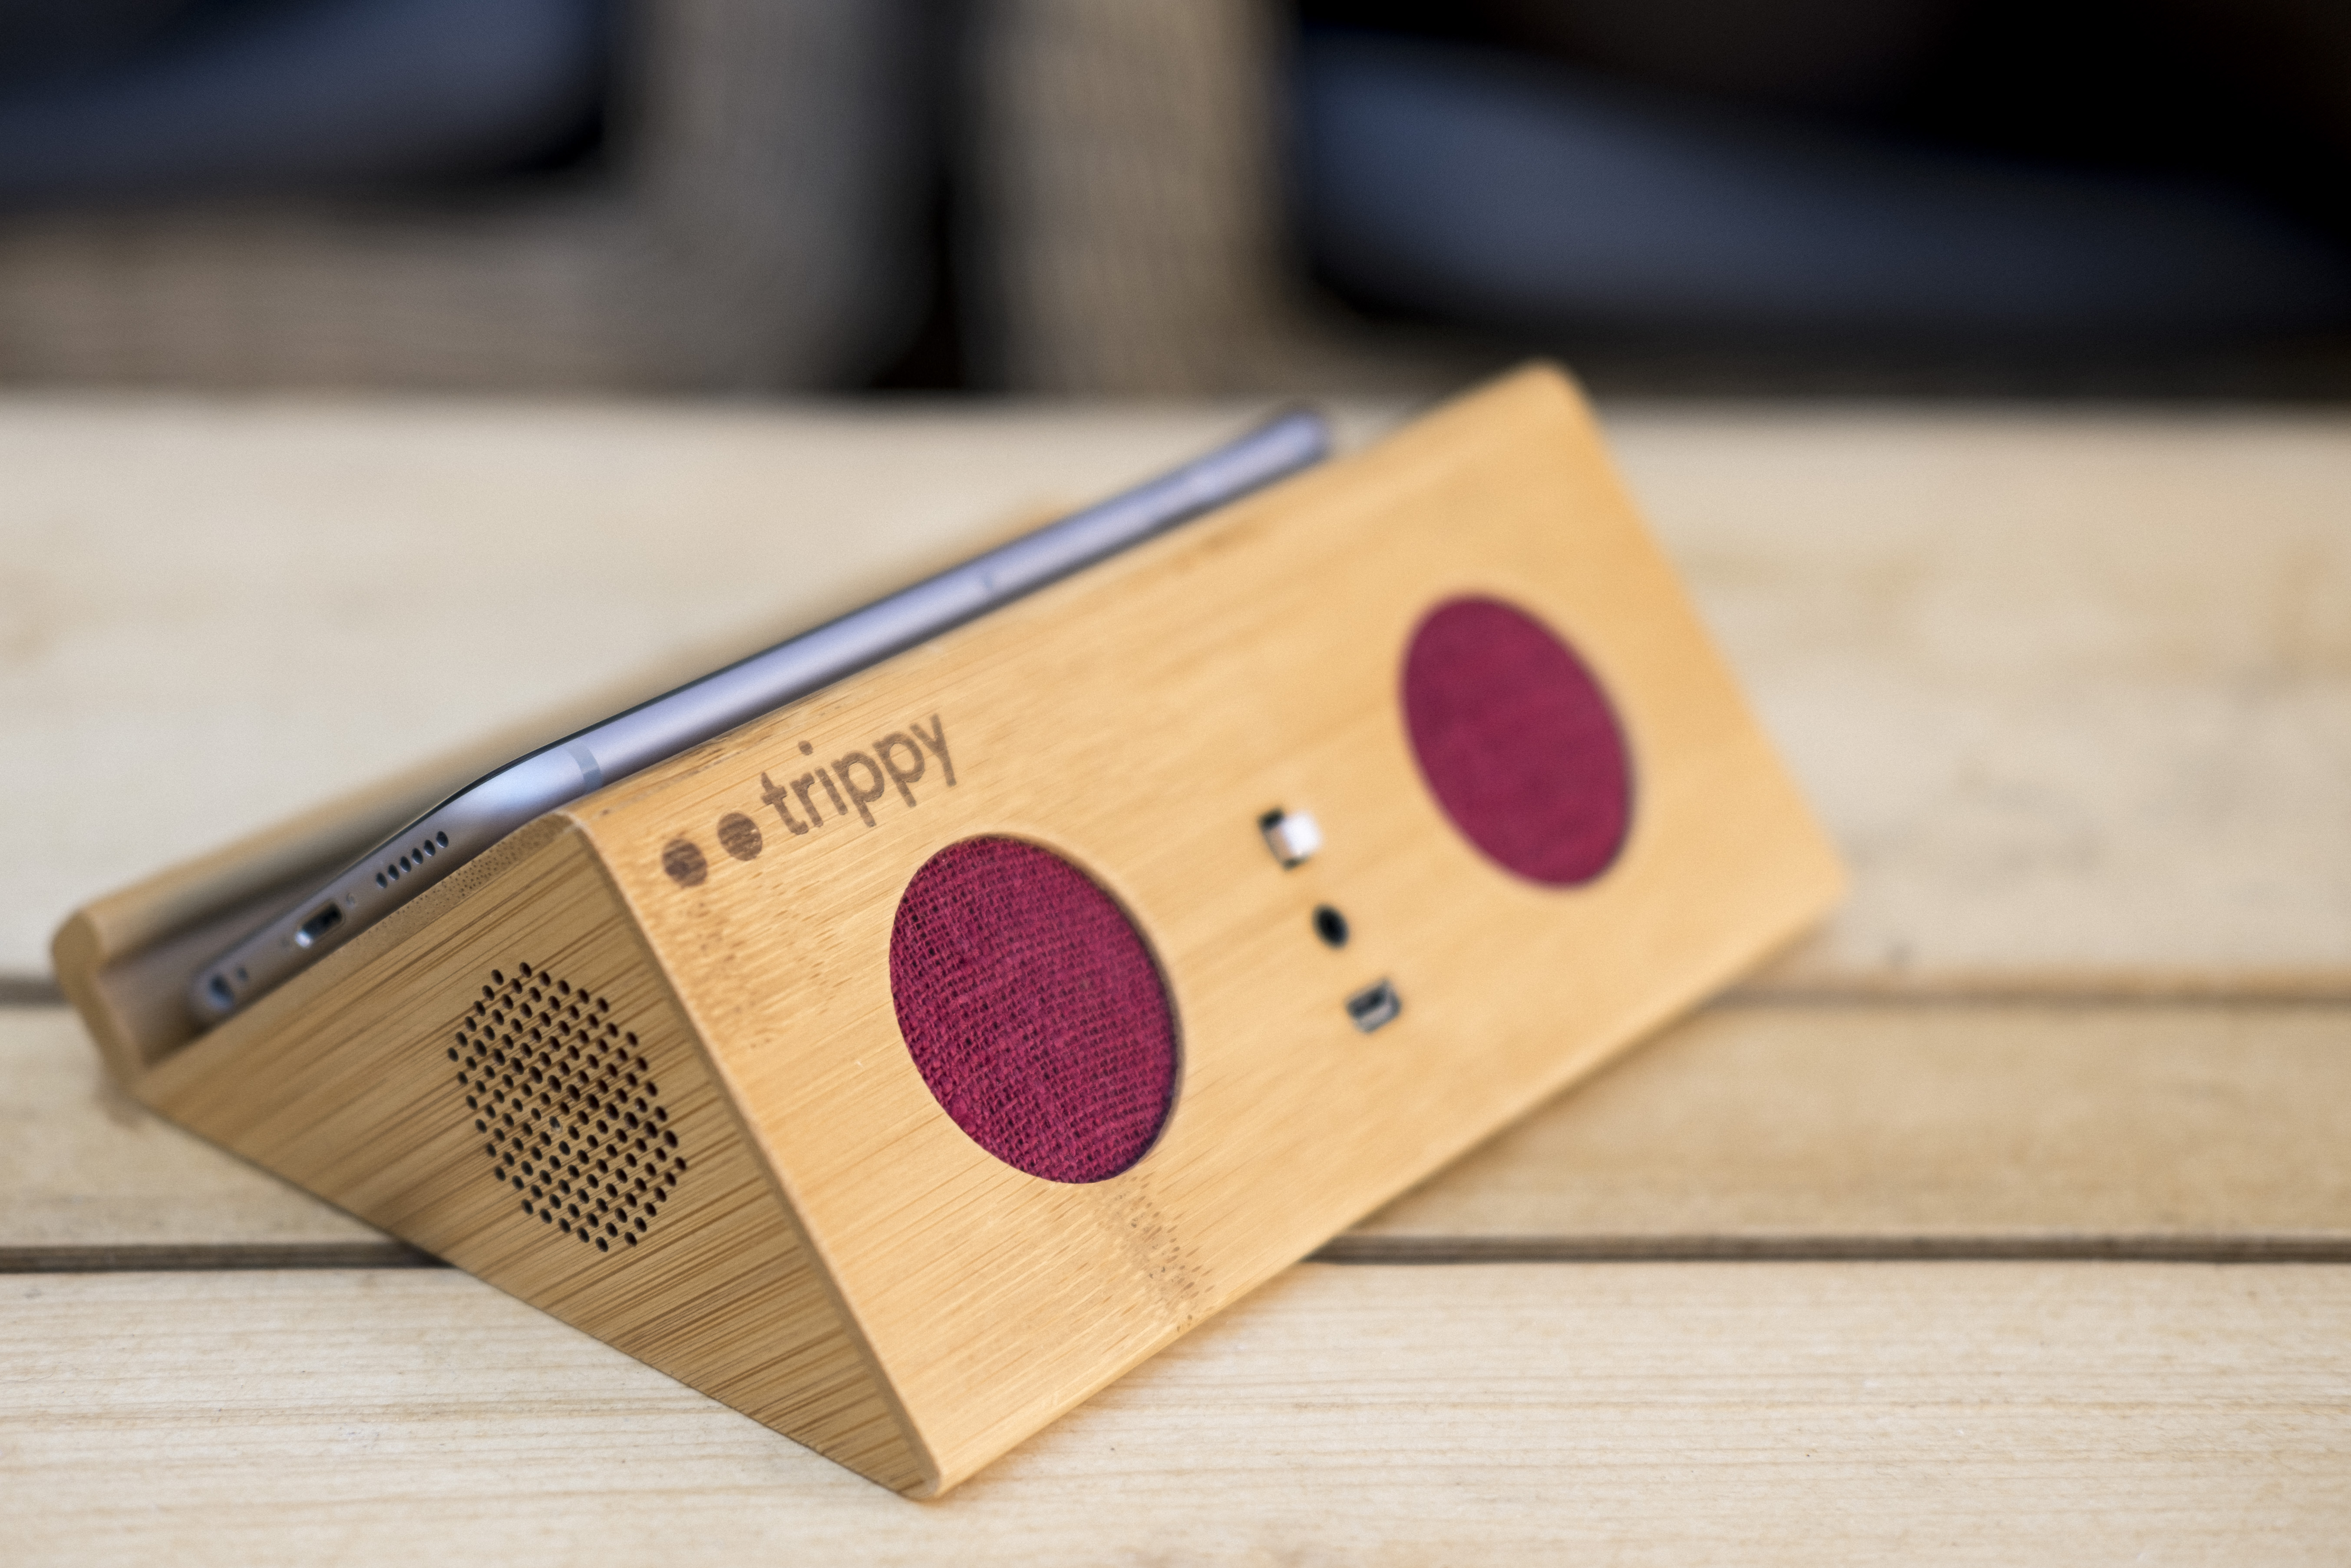 Trippy -The new wireless speaker